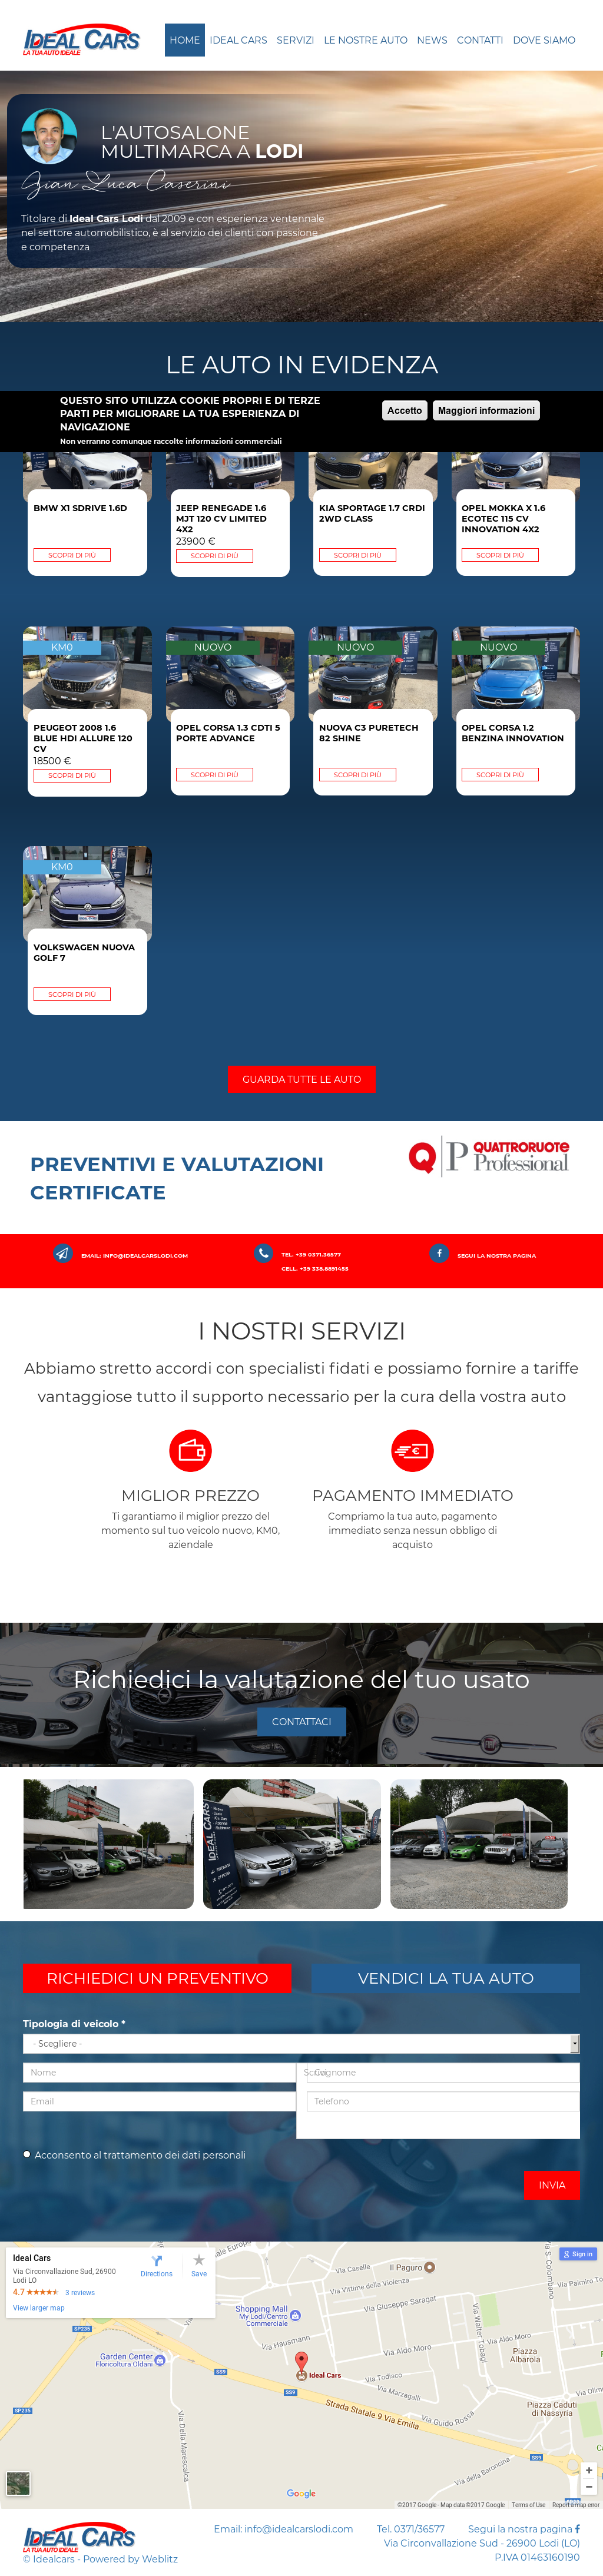 Ideal Cars Di Caserini Gian Luca Competitors, Revenue and Employees ...